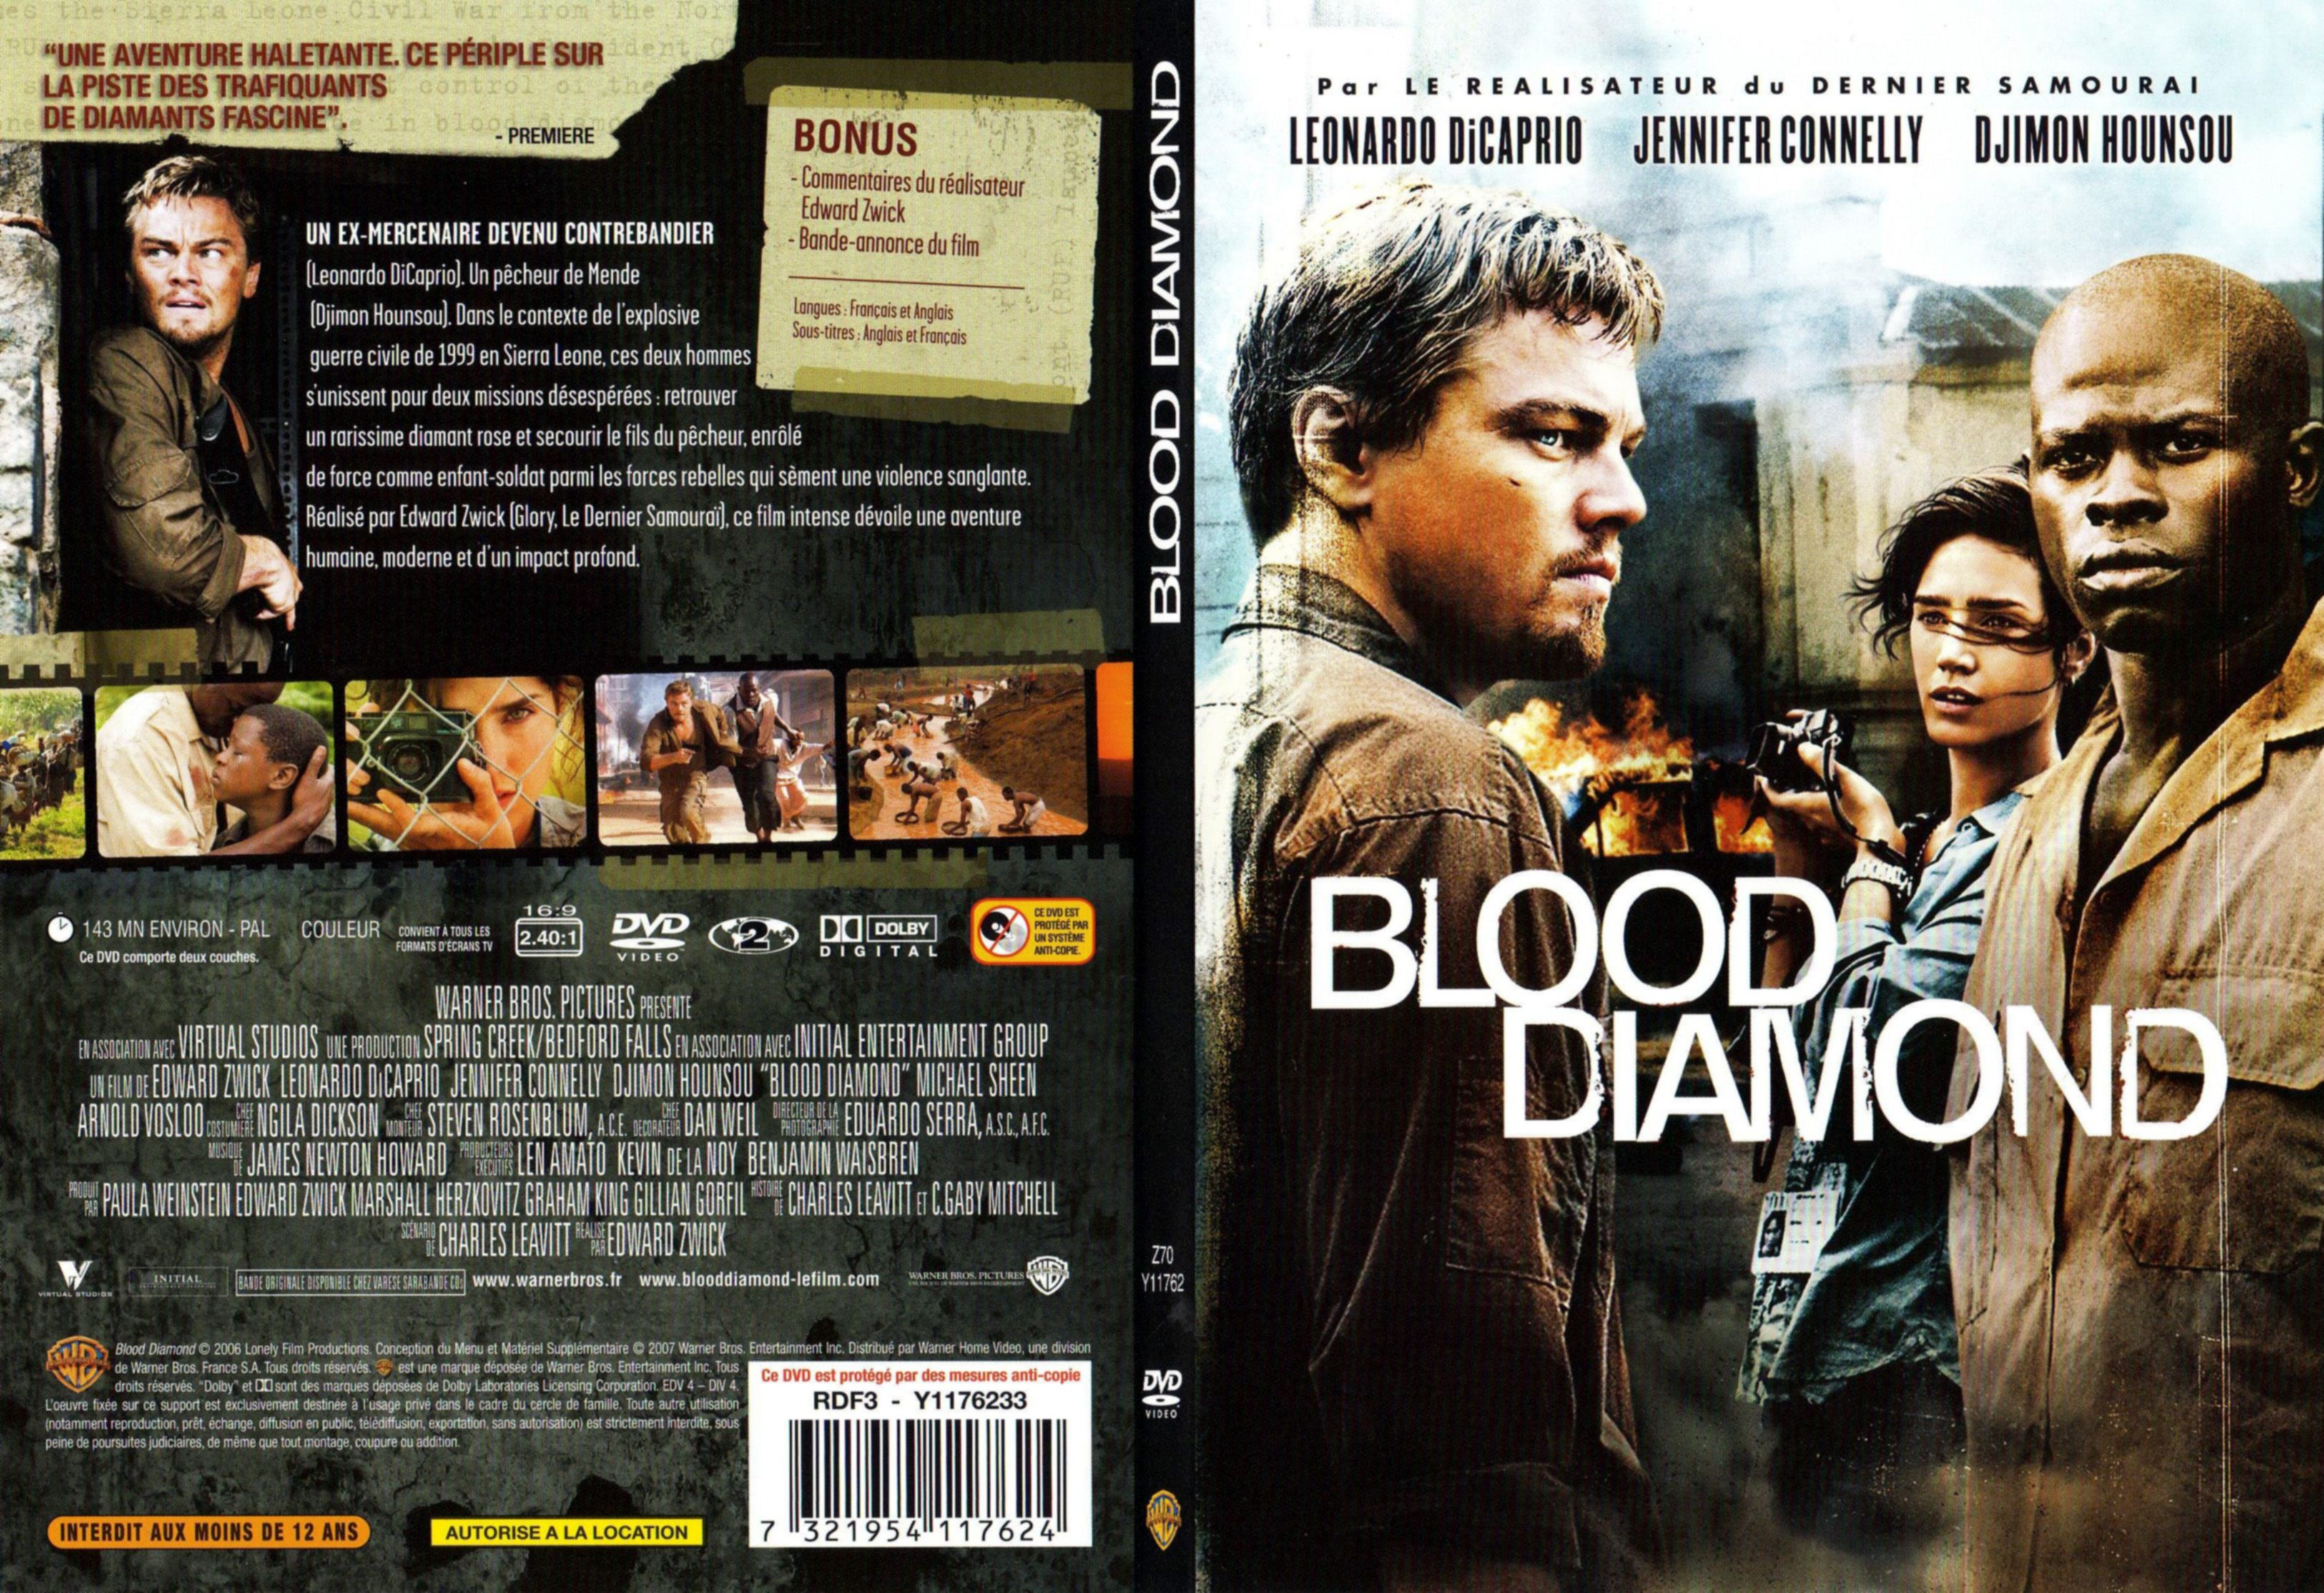 blood diamond thesis Blood diamonds essaysi recently watched a movie blood diamonds this movie takes place in sierra leone in 1999 during a bloody war this is a story of a poor mende farmer who gets caught up in a conflict between an american diamond smuggler and the syndicate that controls local diamond mining, pro.